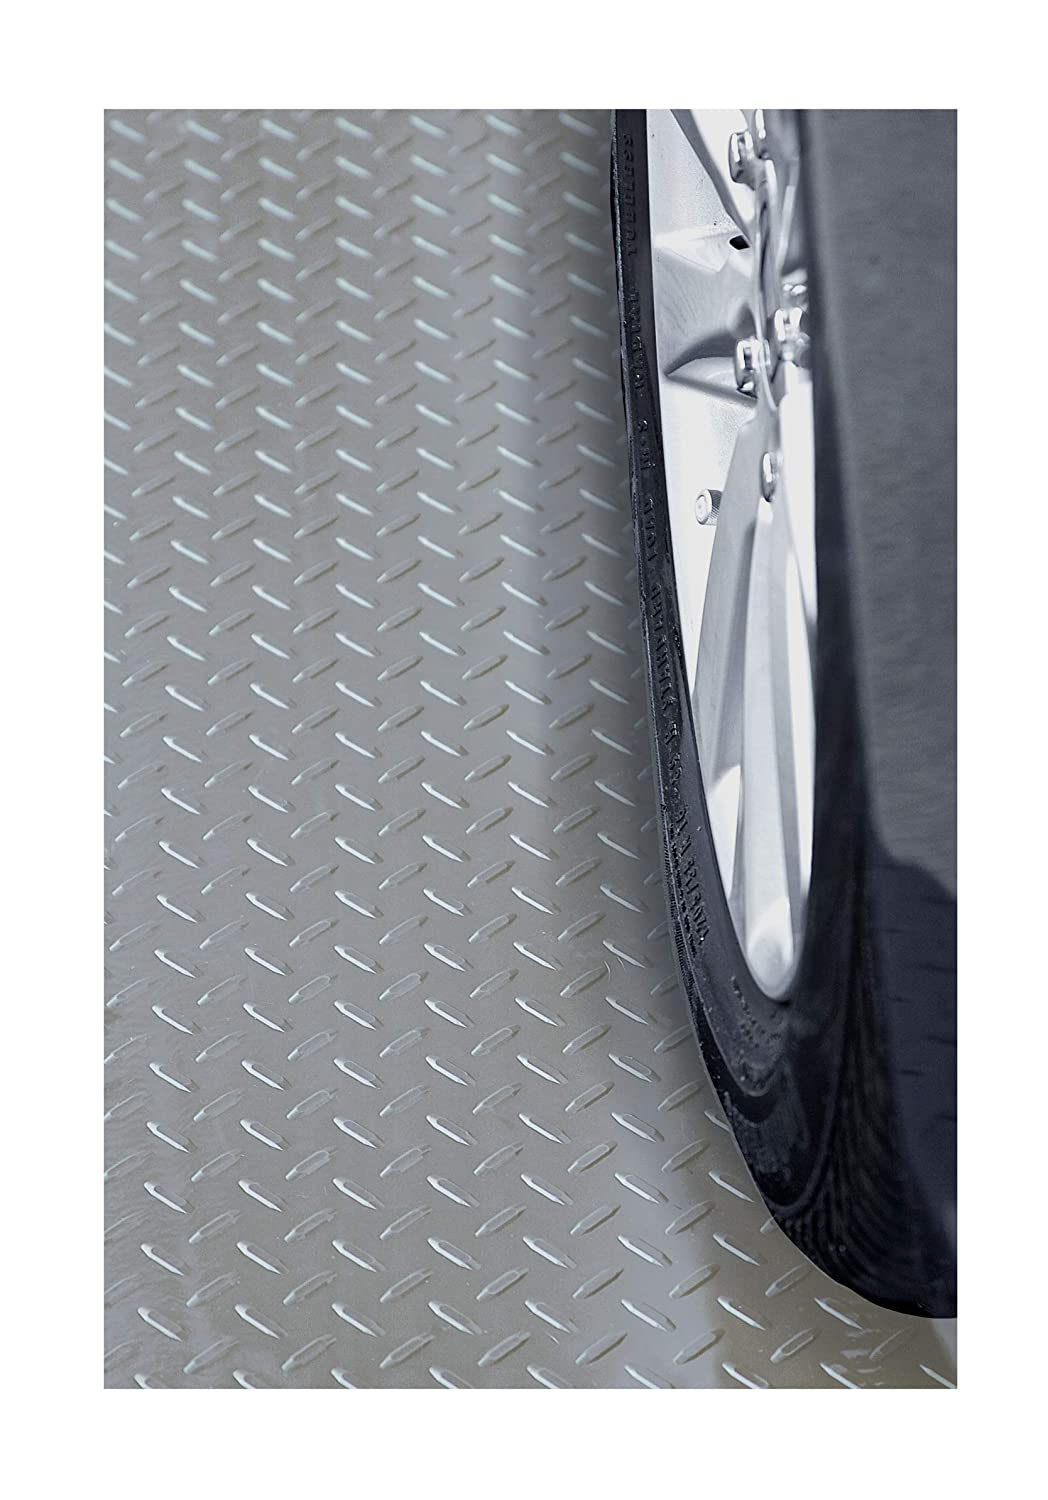 Embossed Diamond Plate Pattern Resilia Silver Garage Floor Runner//Protector 4 x 15 48 inches Wide